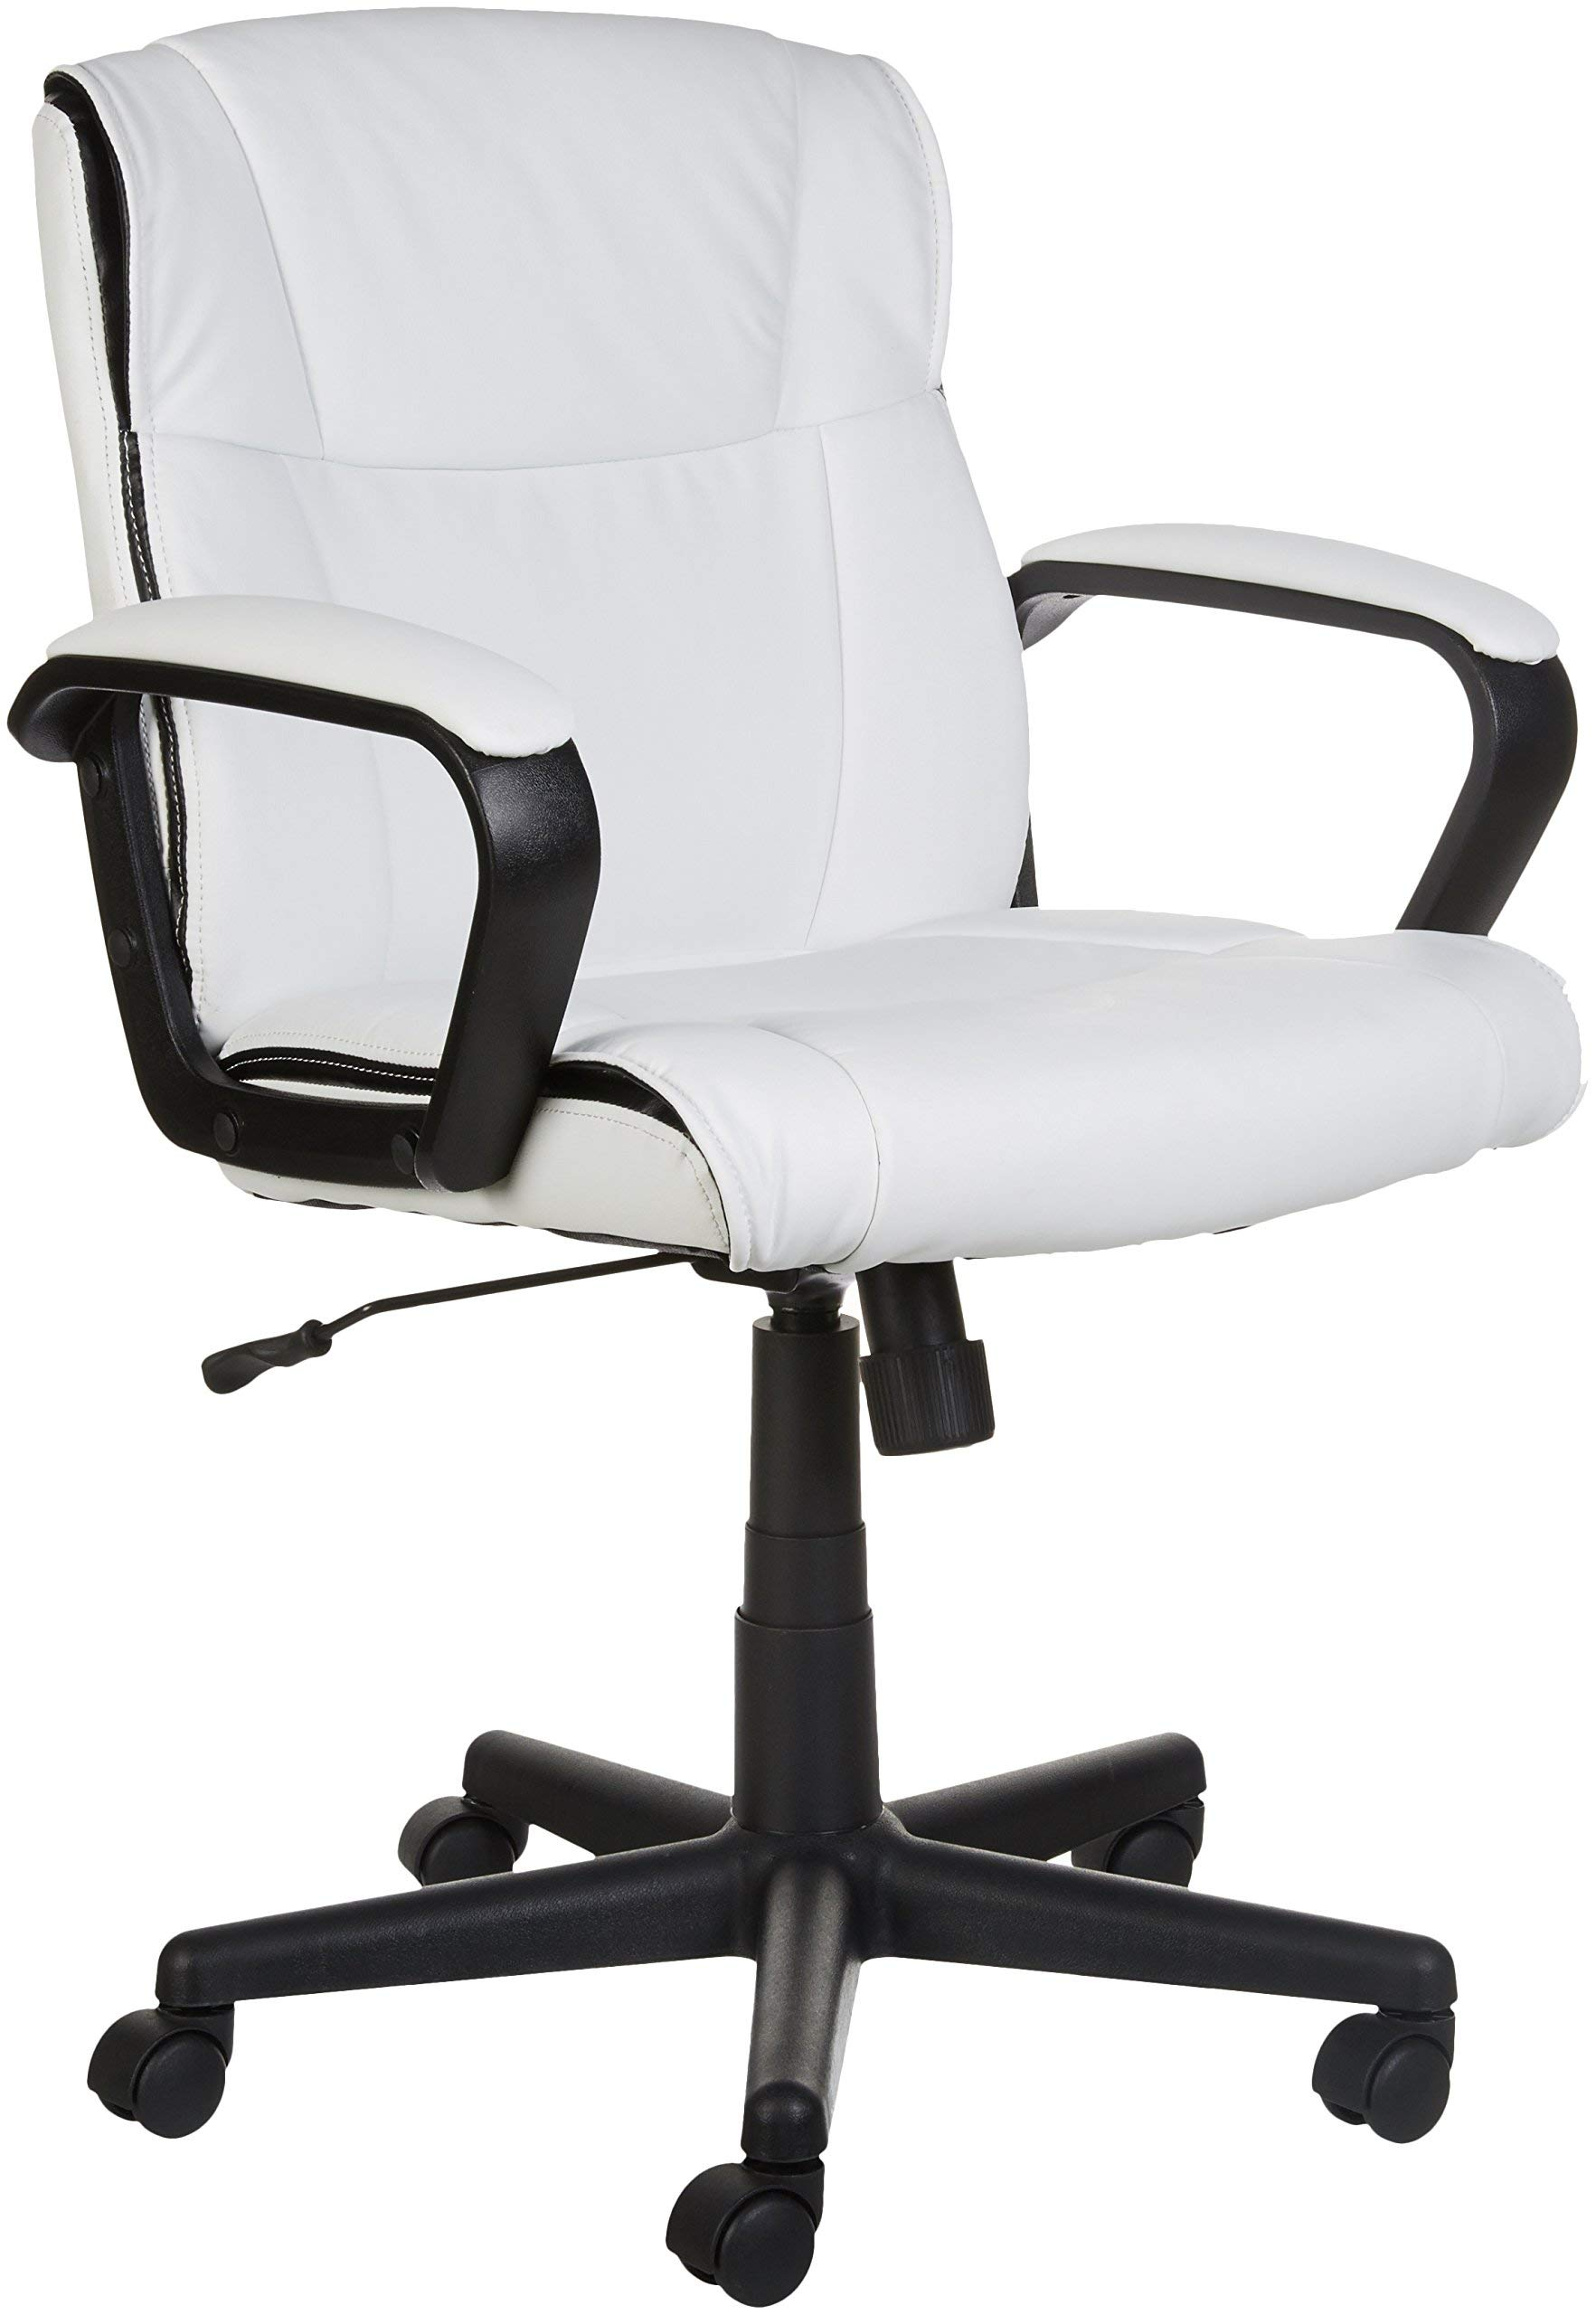 AmazonBasics Classic Leather-Padded Mid-Back Office Computer Desk Chair with Armrest - White by AmazonBasics